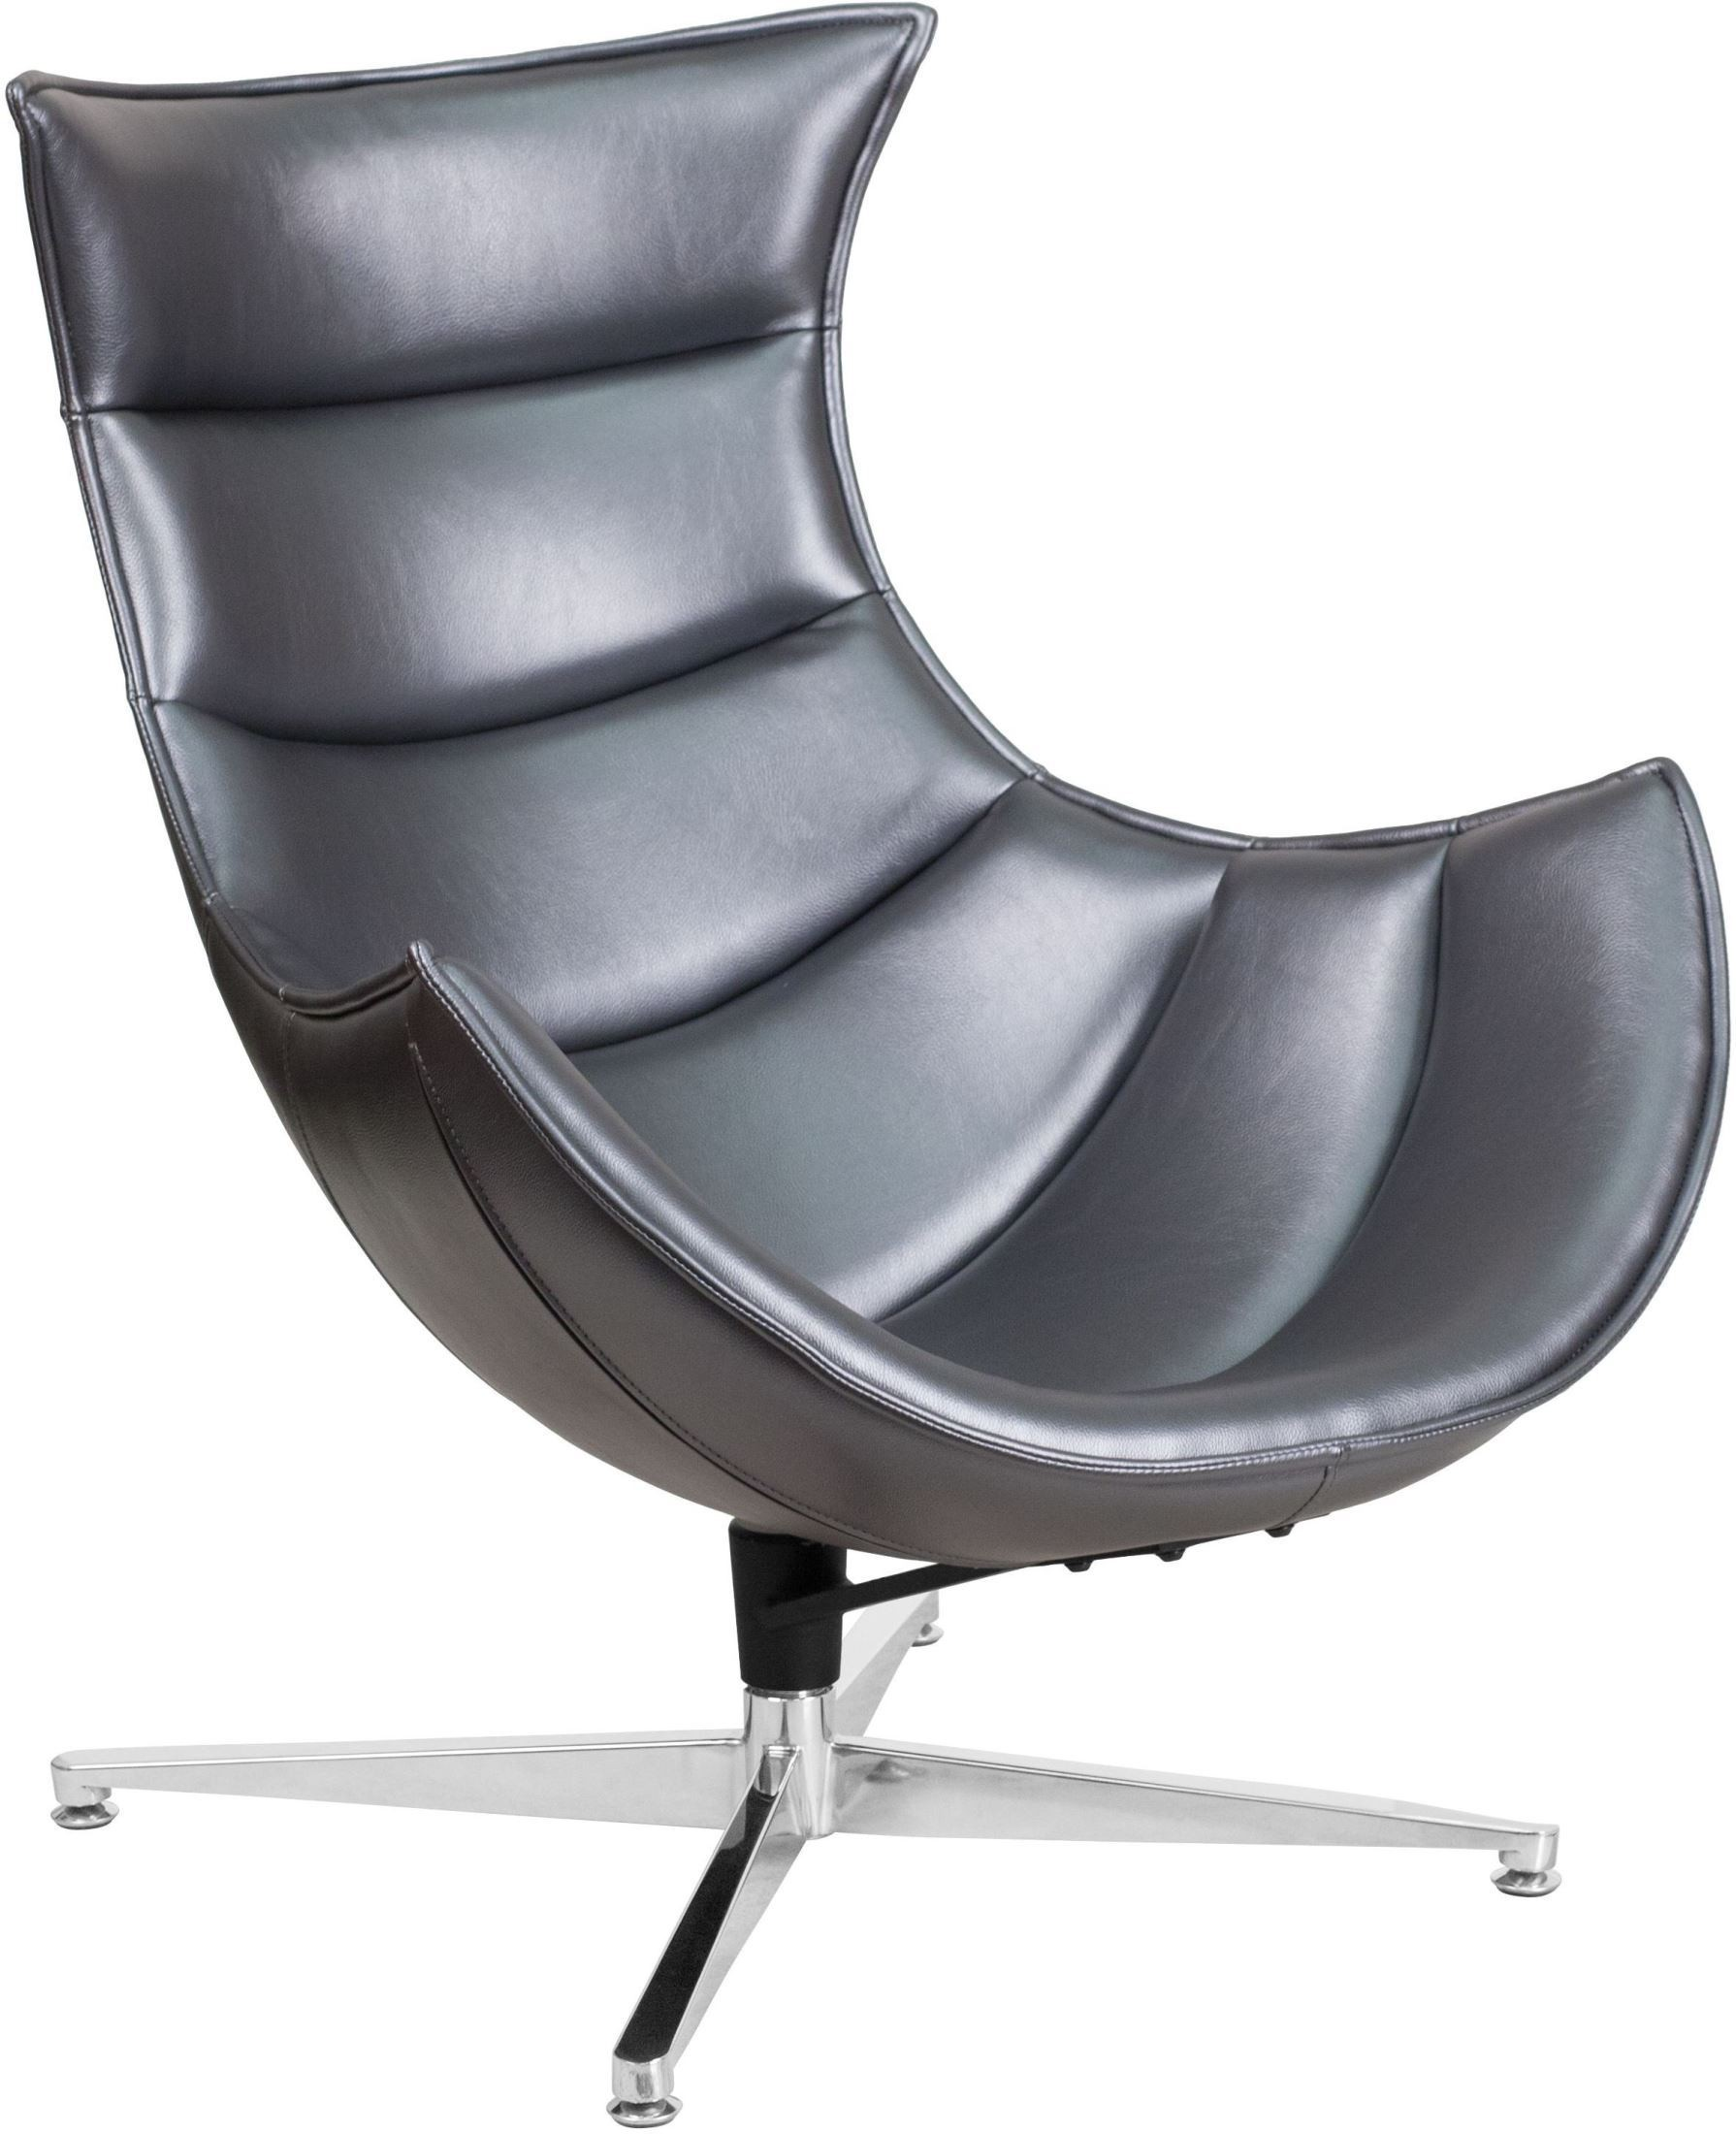 Cocoon Chair Gray Leather Swivel Cocoon Chair Zb 37 Gg Renegade Furniture